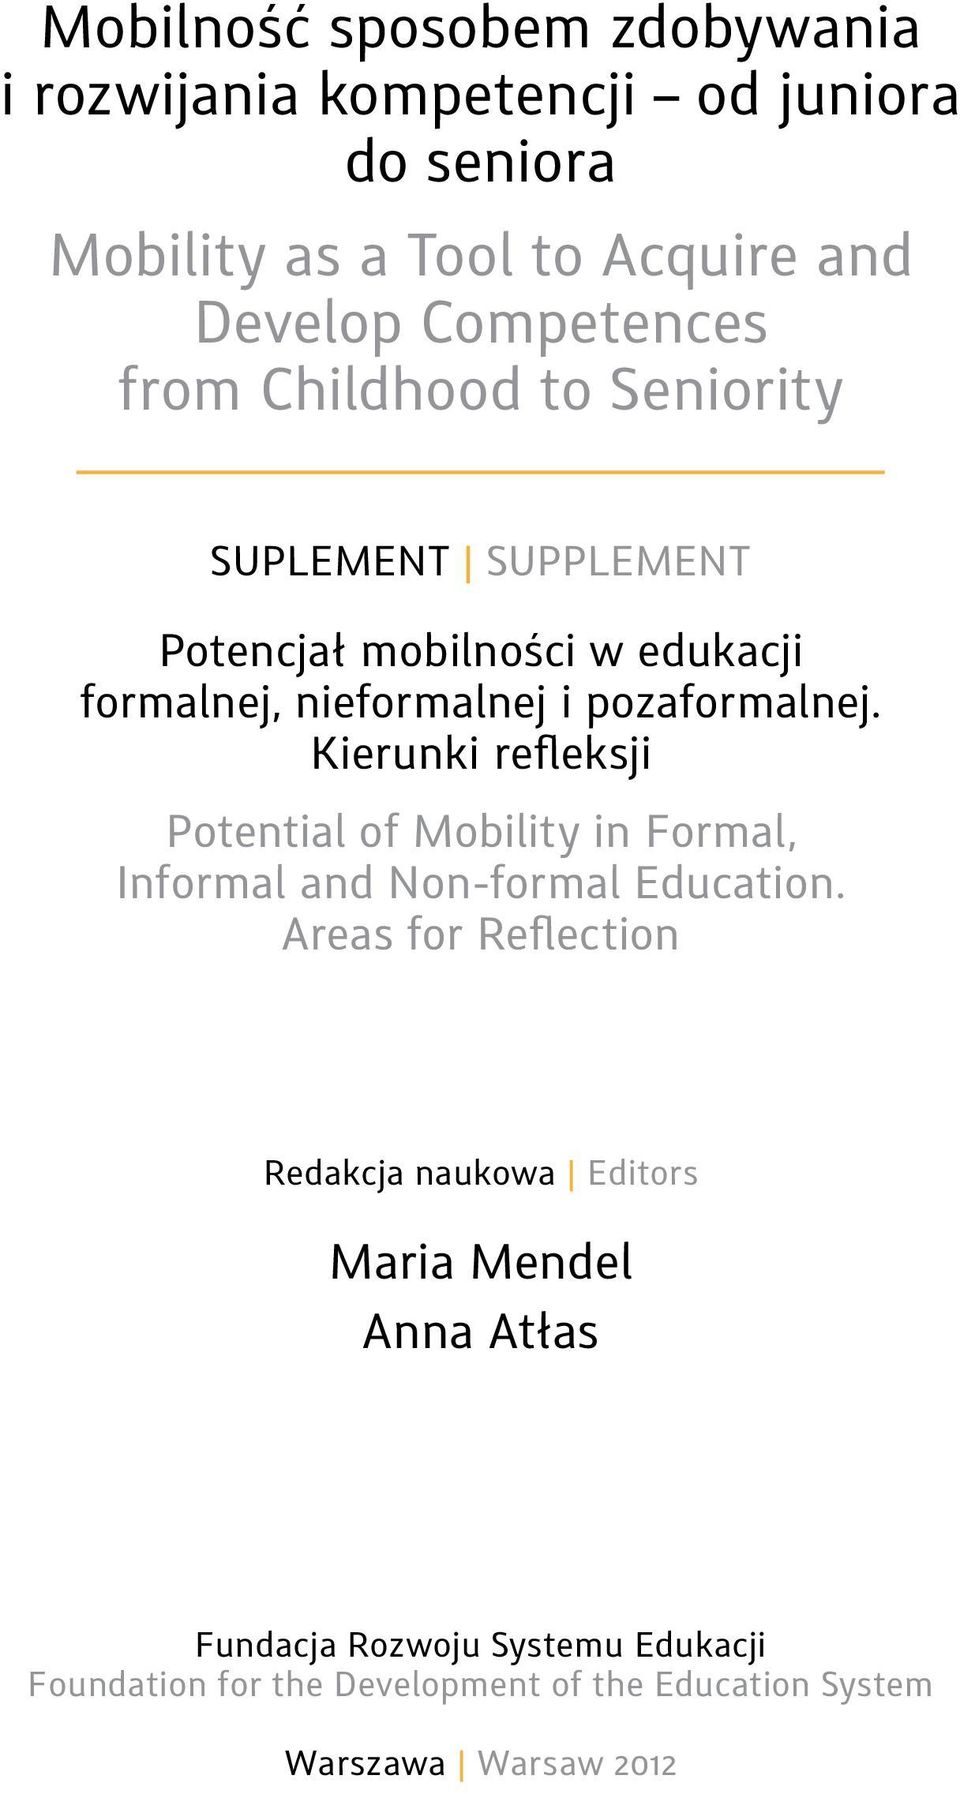 pozaformalnej. Kierunki refleksji Potential of Mobility in Formal, Informal and Non-formal Education.